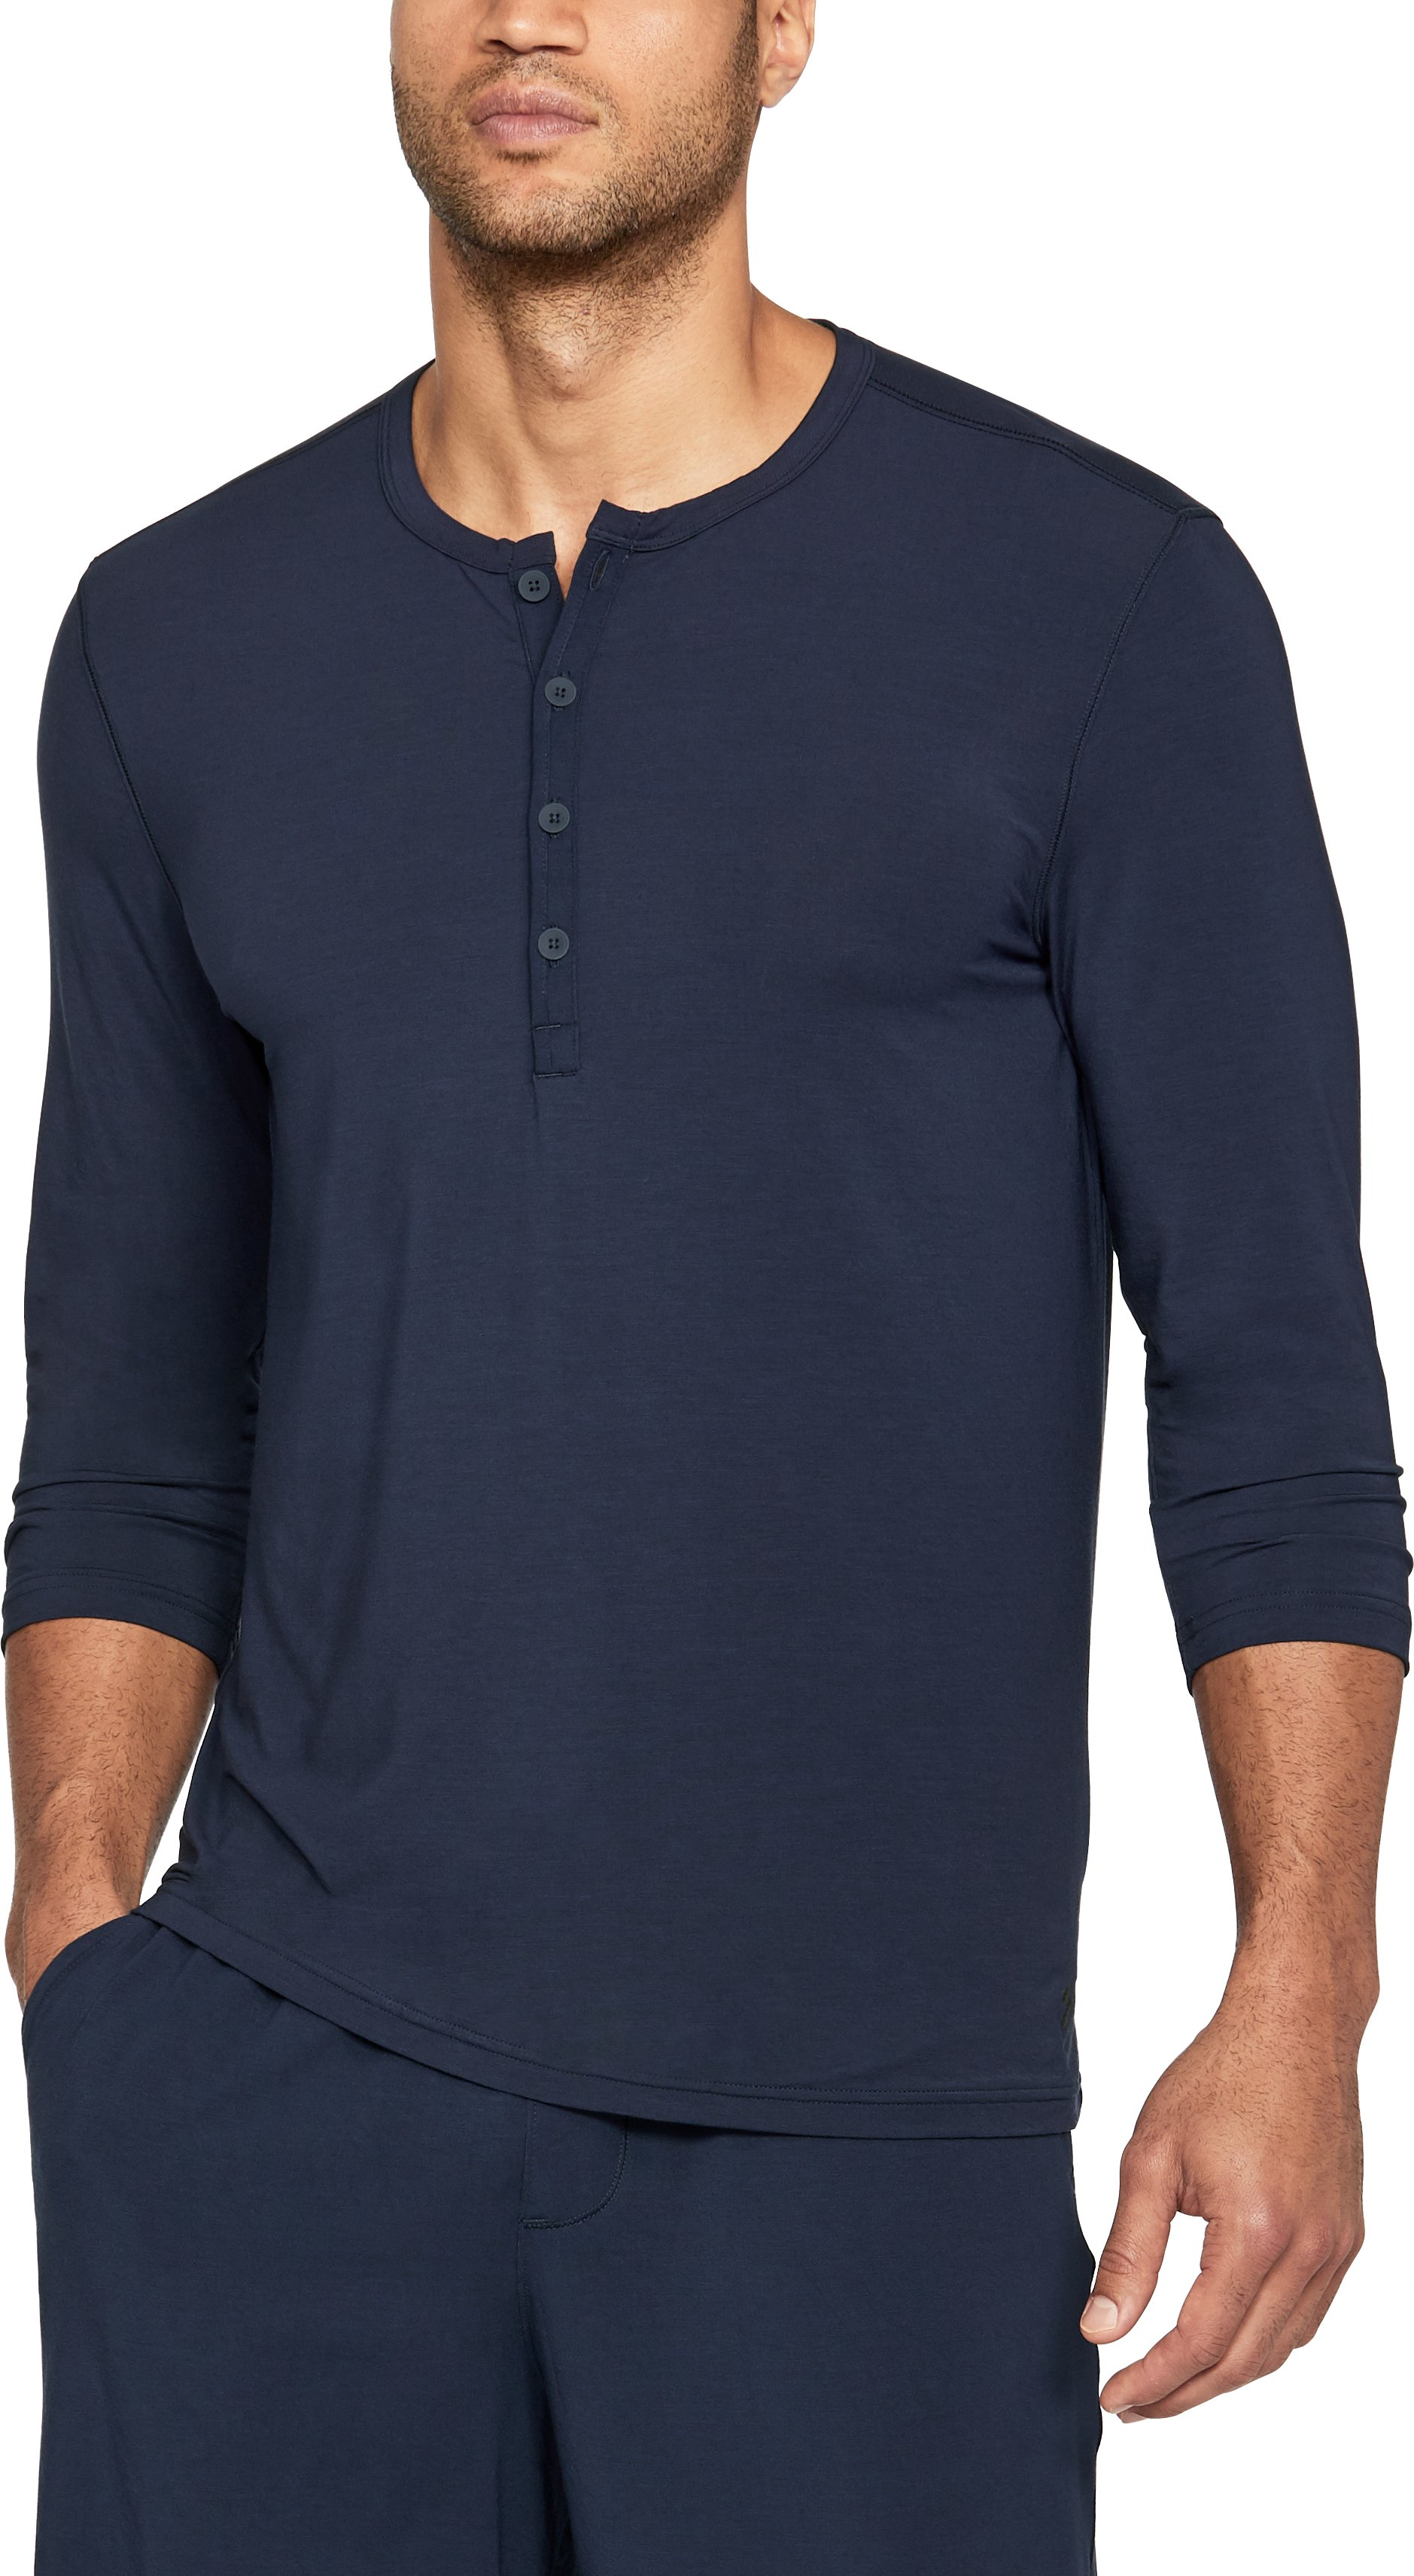 Men's Athlete Recovery Sleepwear Henley, Midnight Navy